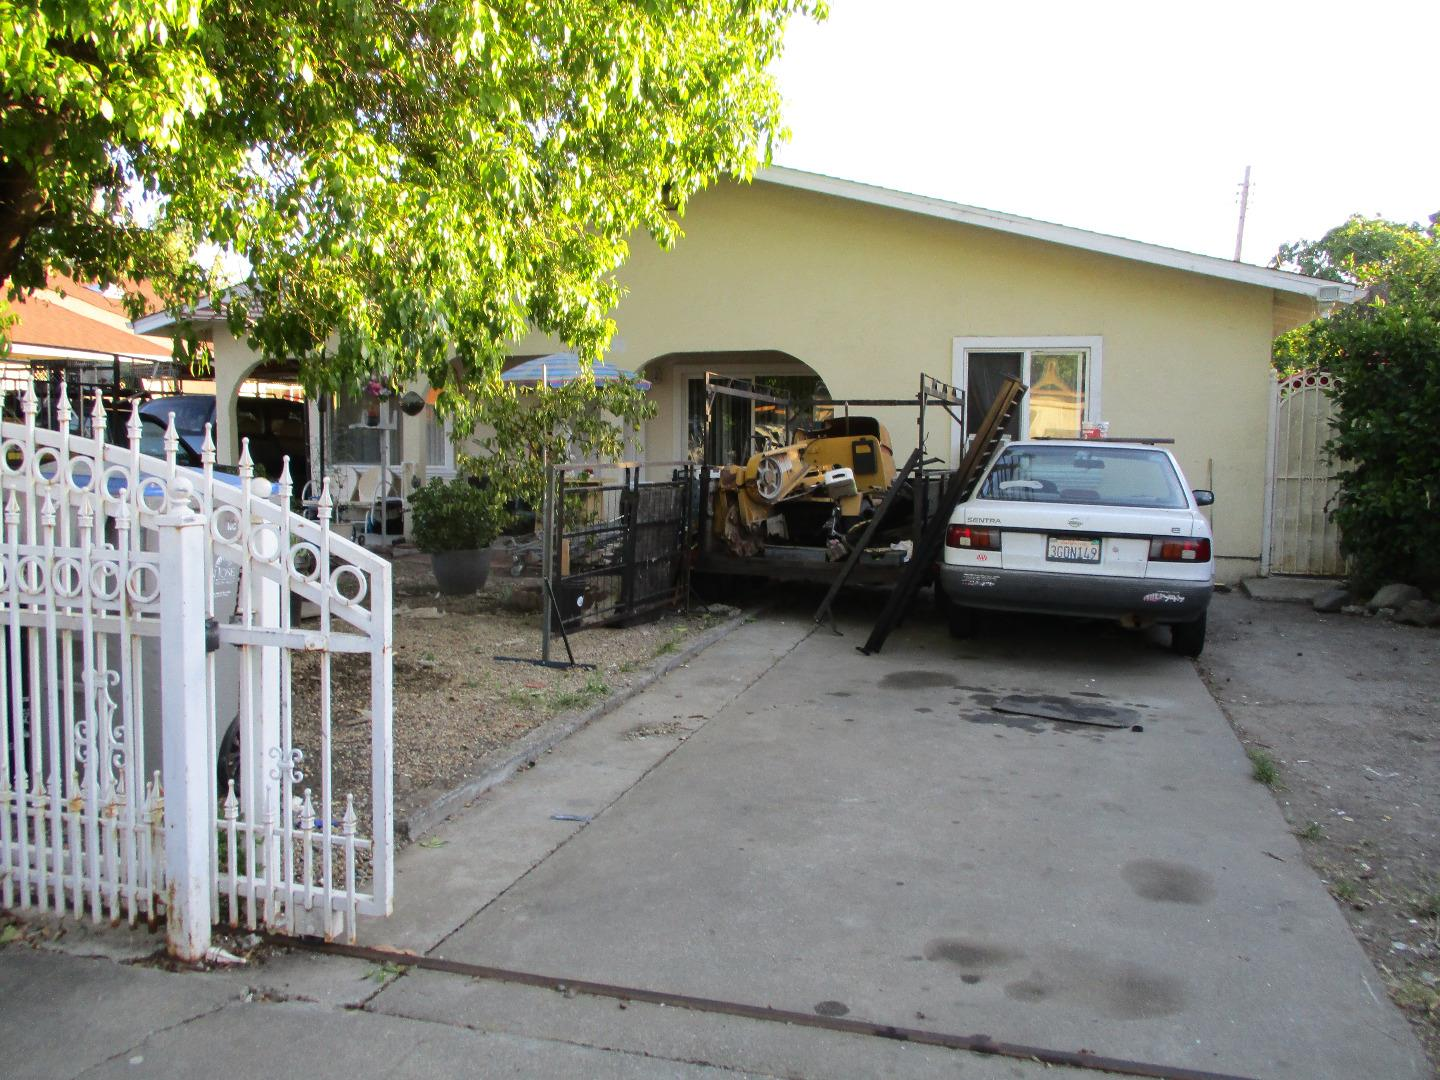 Additional photo for property listing at 10171 Ryan Street  San Jose, California 95127 United States